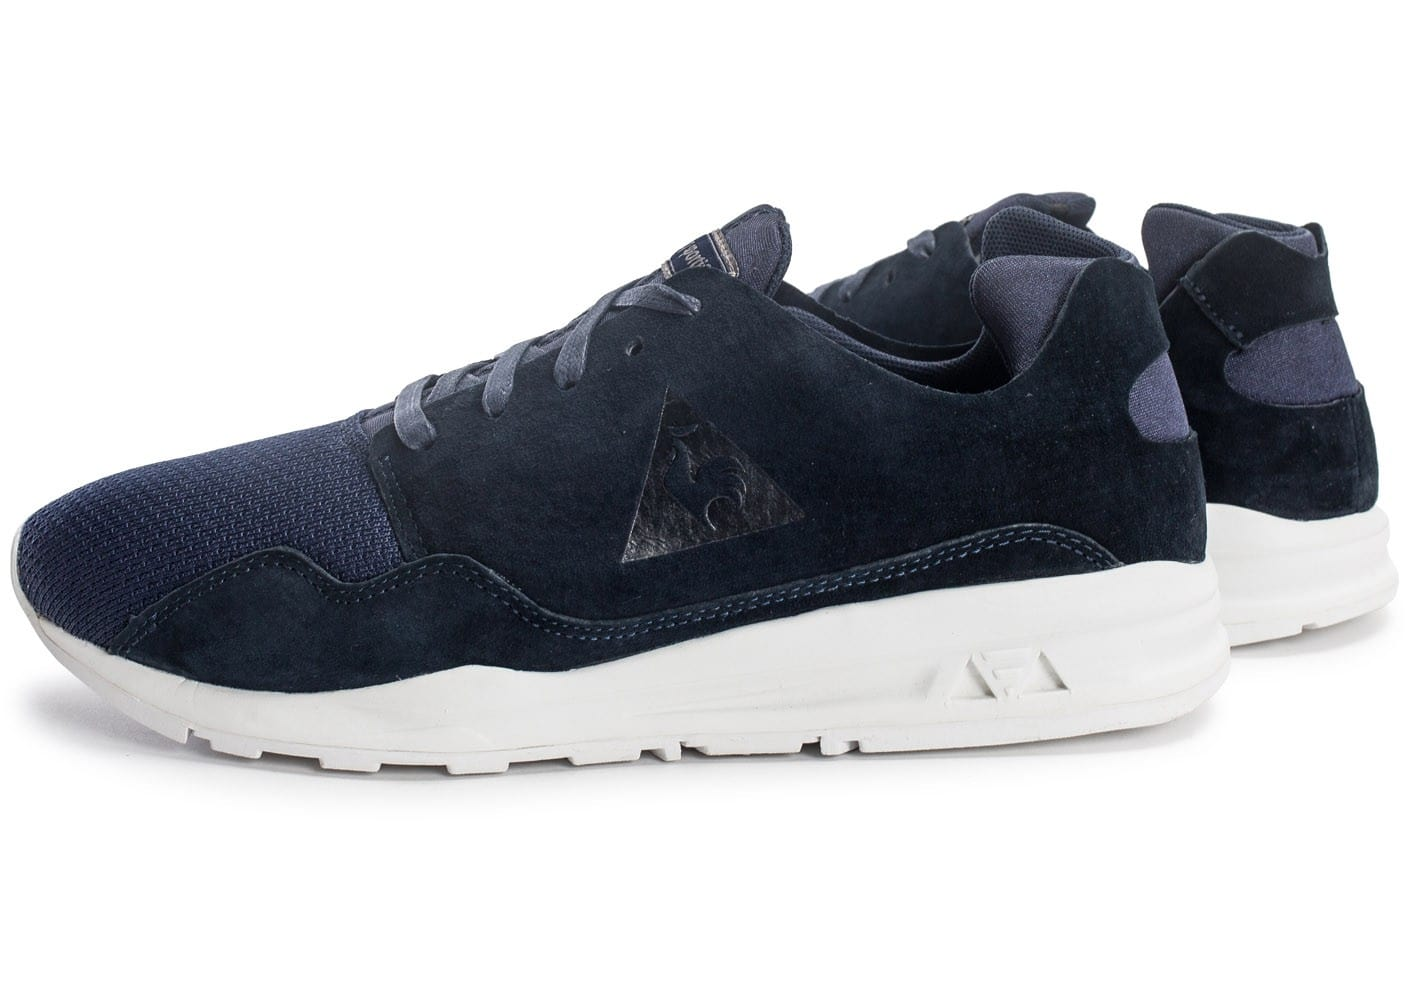 Le Coq Sportif Lcs R Pure Leather/mesh Sneakers & Tennis Basses Homme.  Bleu (Dark Blue) GnJCiV